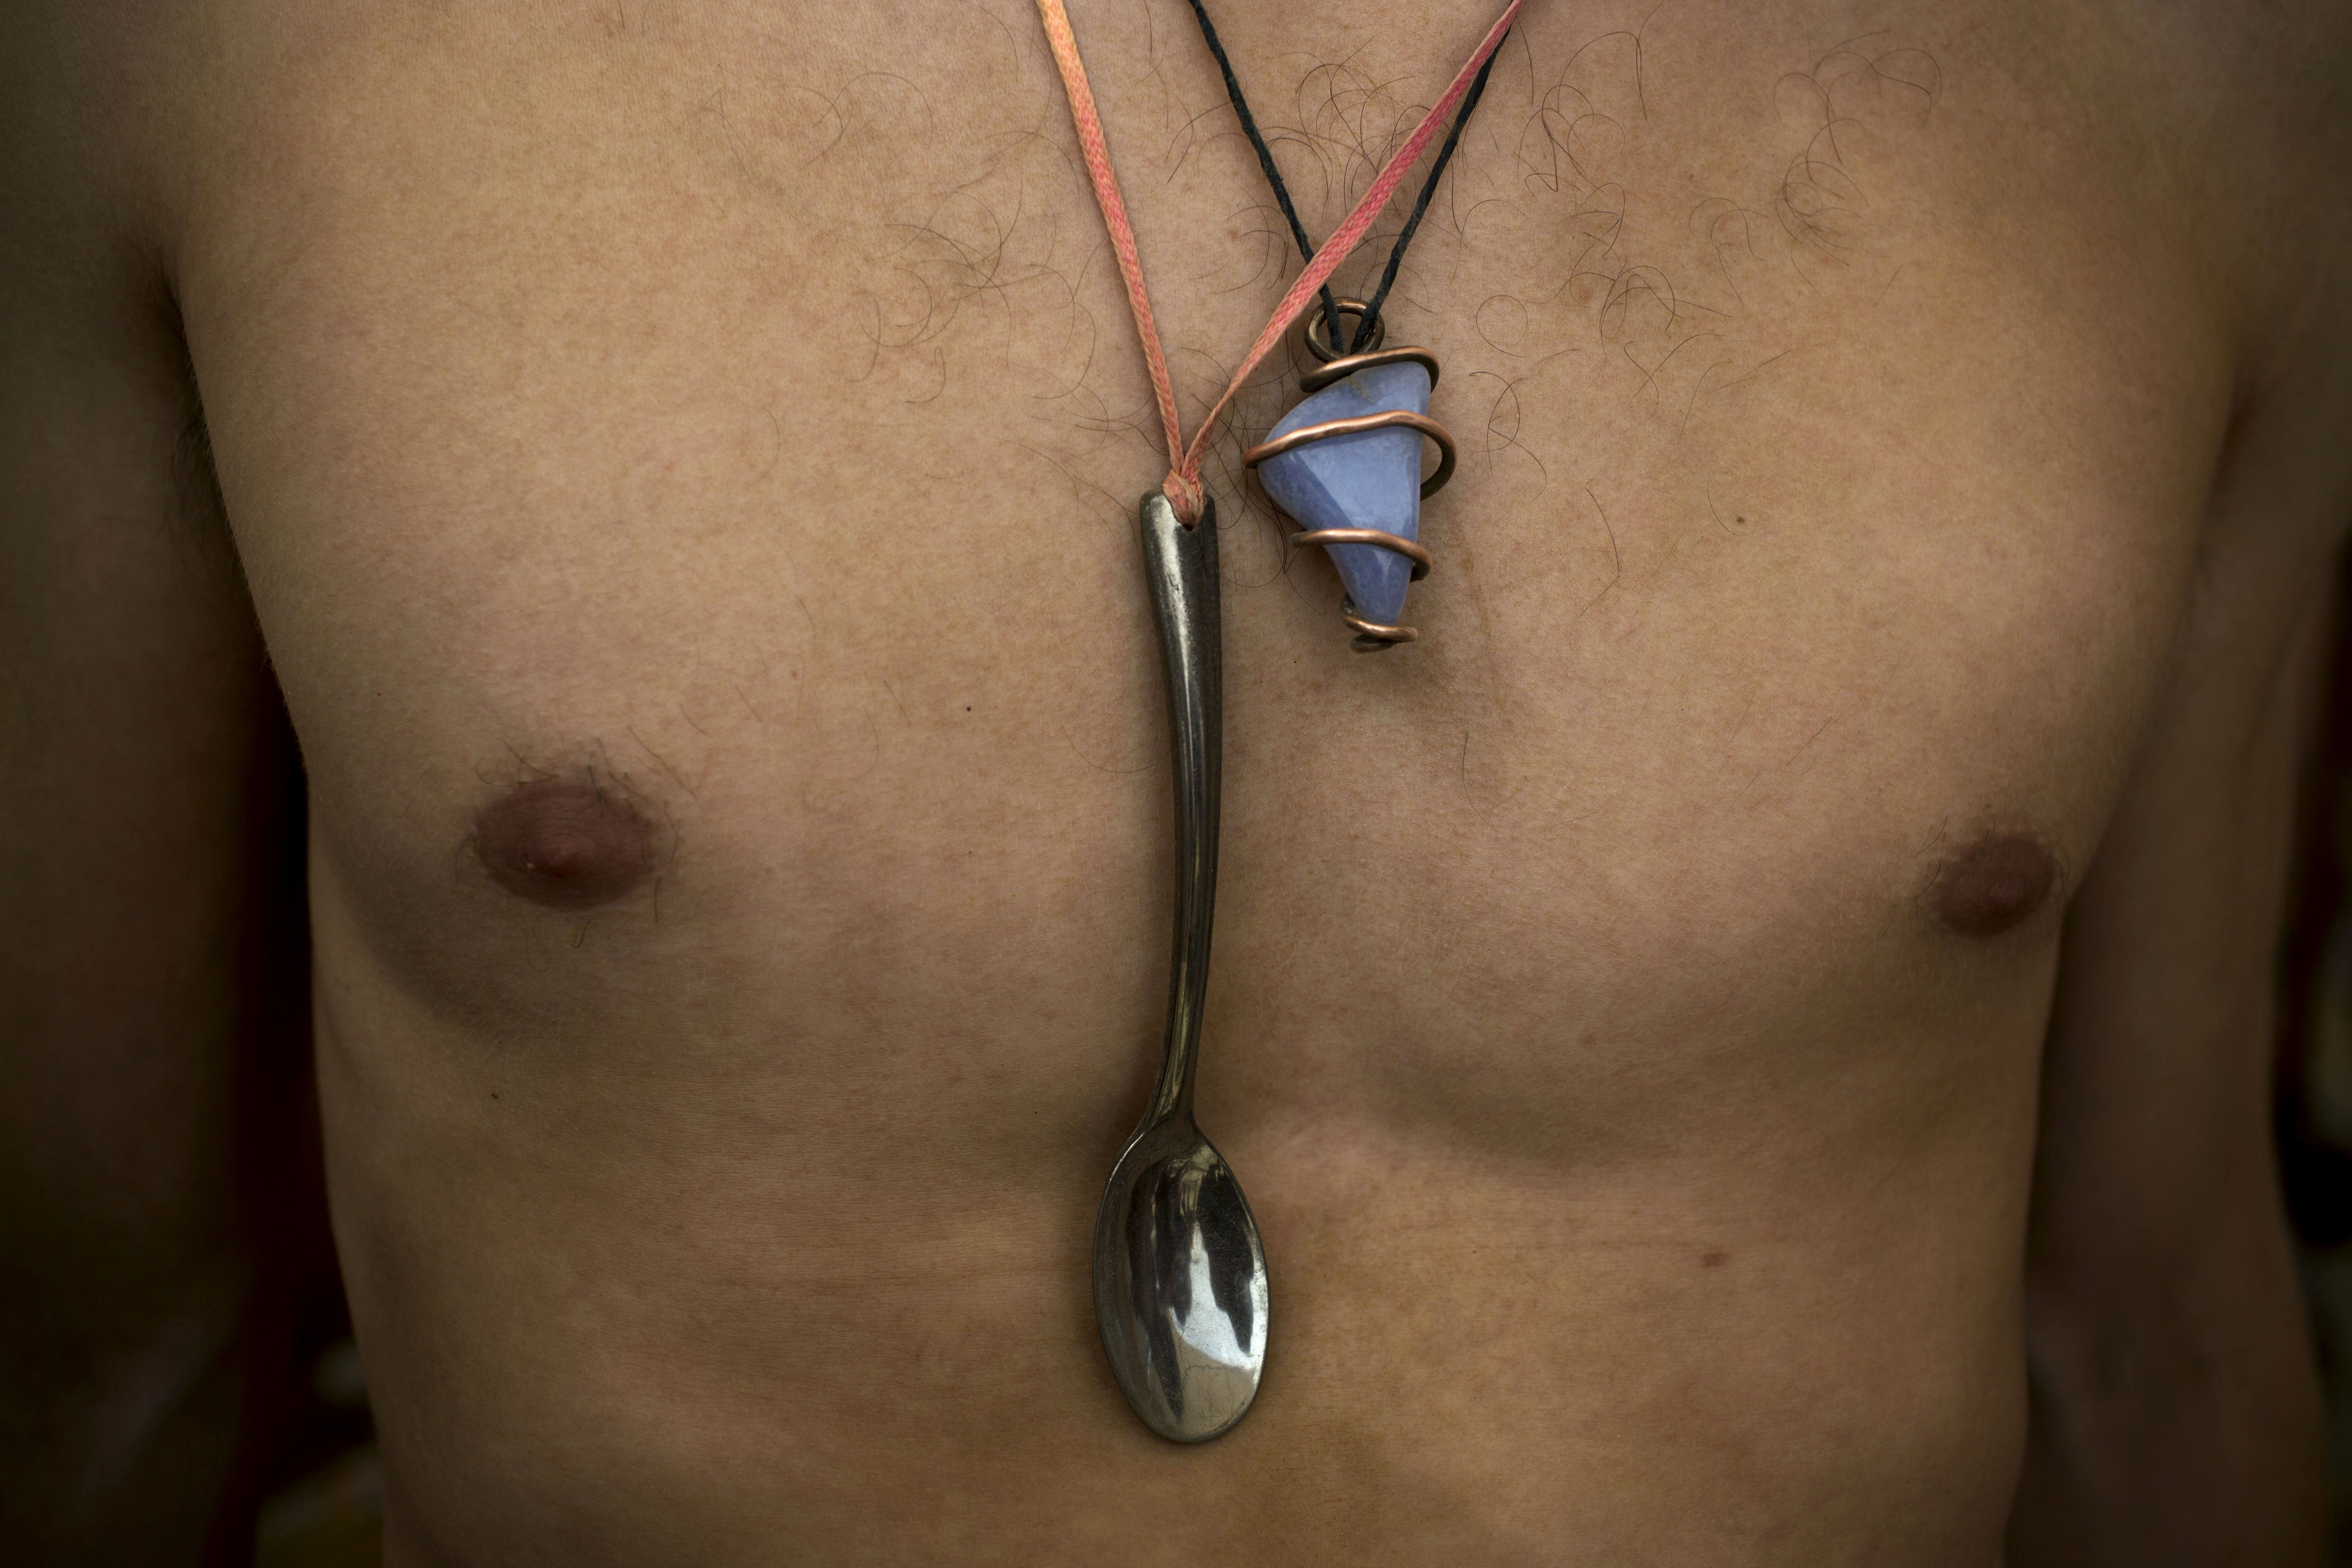 An Israeli man wears a spoon and a stone as necklaces as he dances during a party at Israel''s first Midburn festival in the Negev Desert, Israel on June 5, 2014.